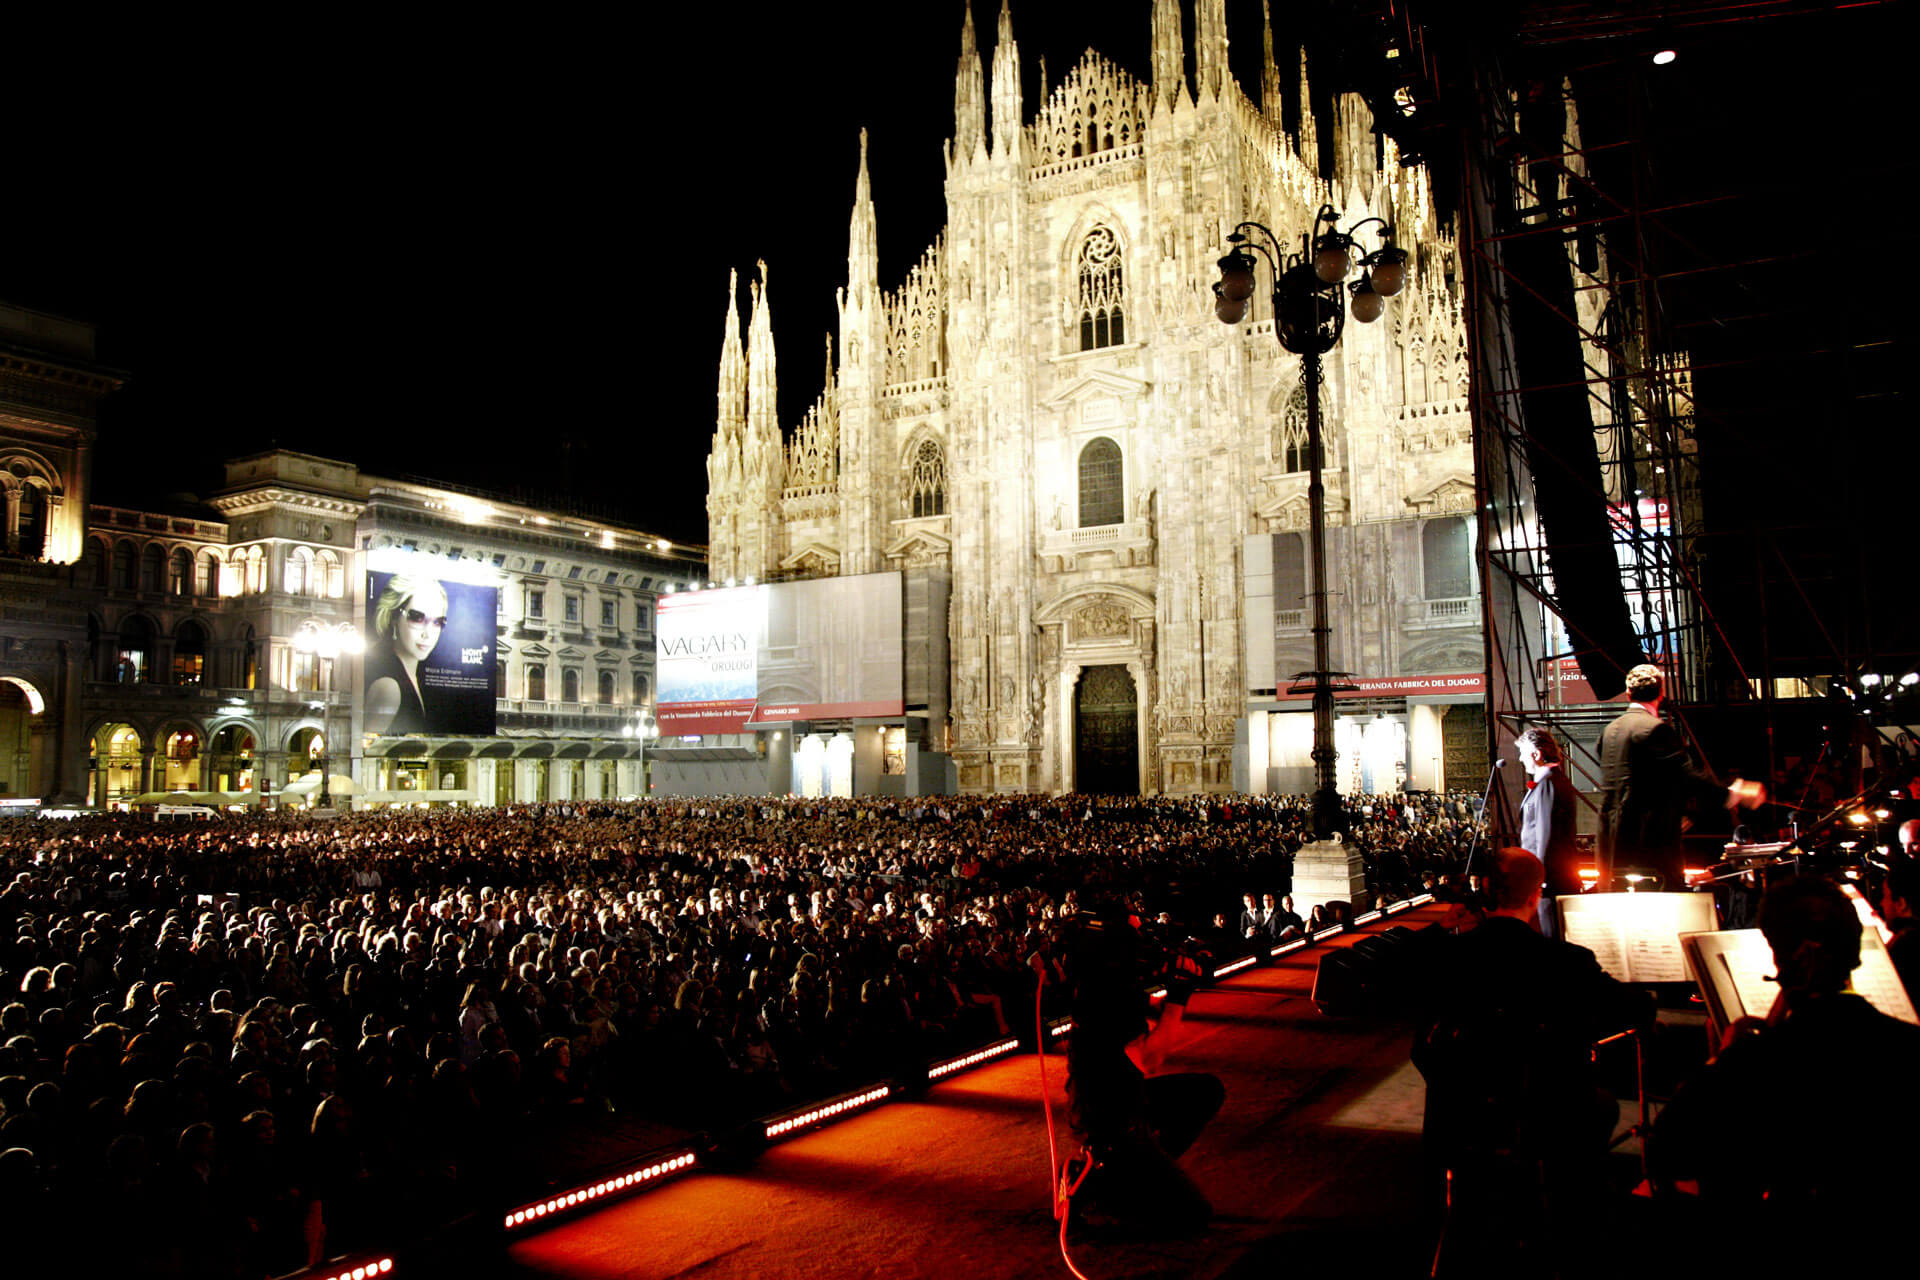 Anniversary Of The Italian Republic, Piazza Duomo, Milan